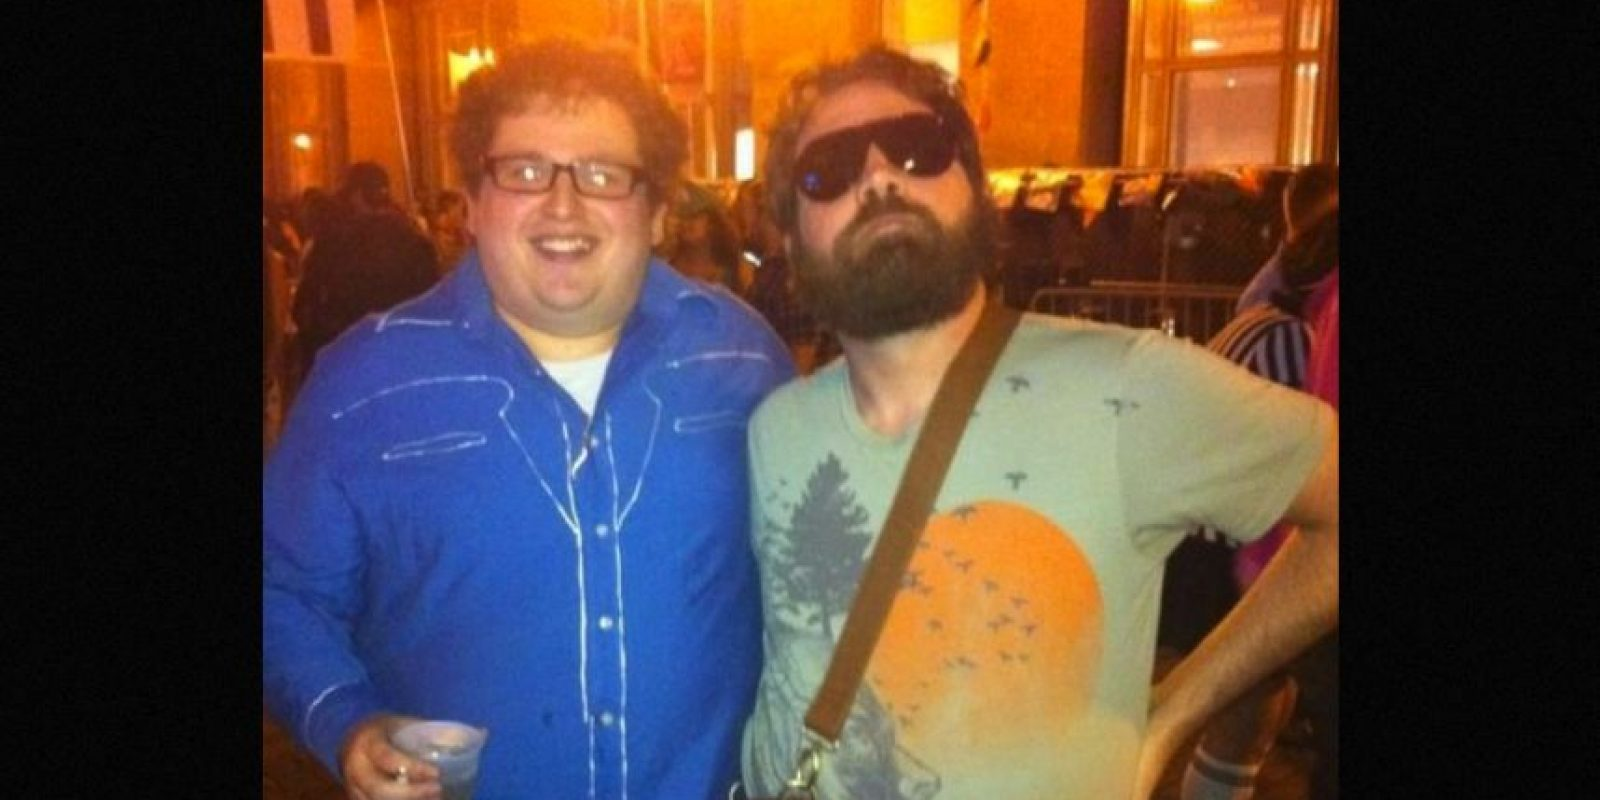 Iguales a Zach Galifianakis y Jonah Hill F Foto: Reddit/Getty